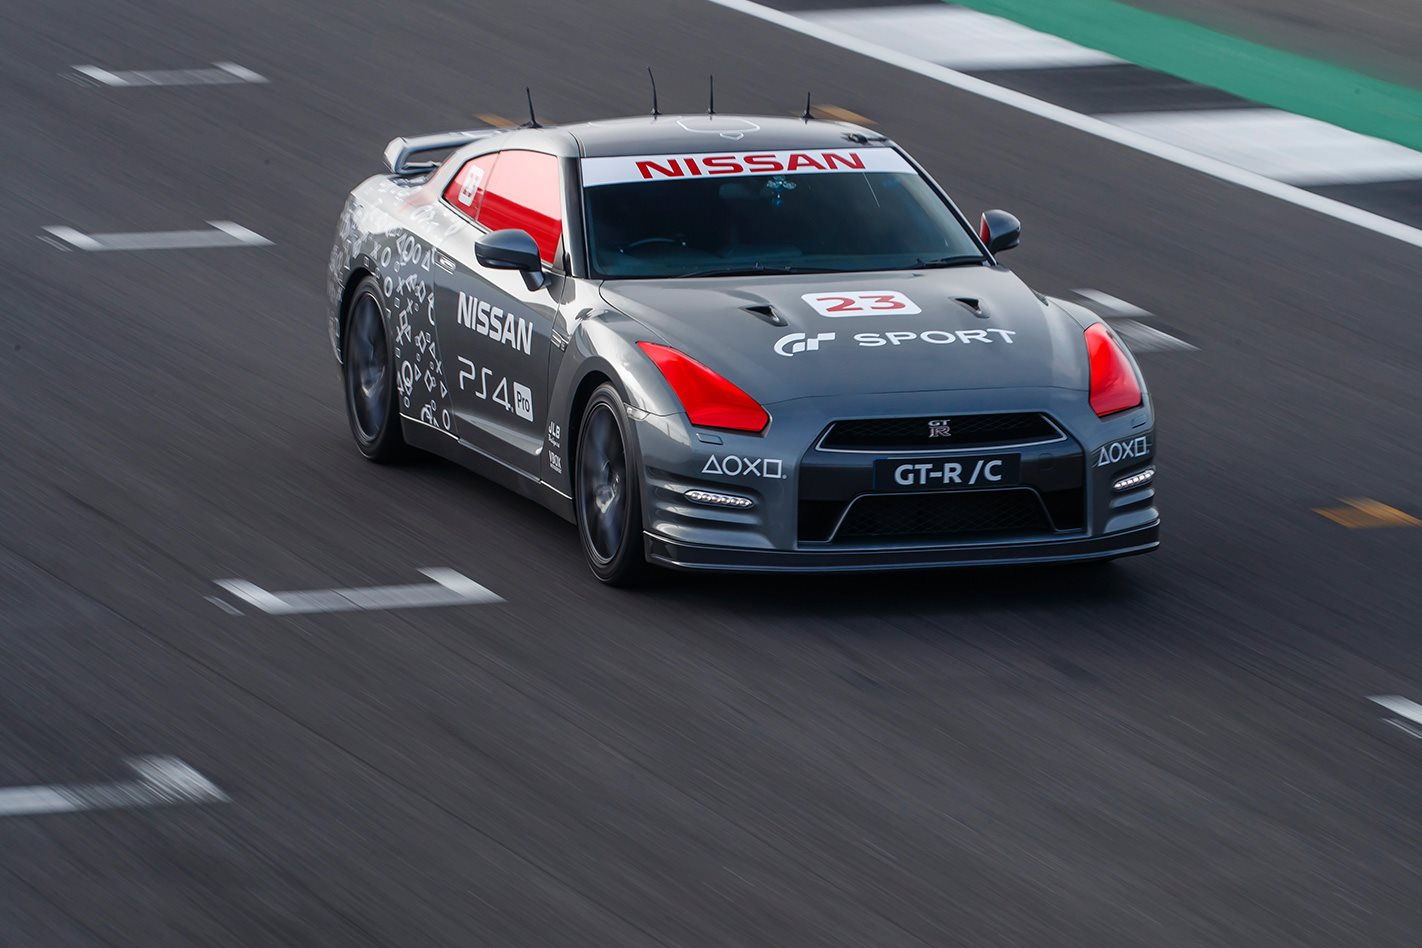 Engineers turn Nissan into 190mph radio controlled vehicle  and race around Silverstone